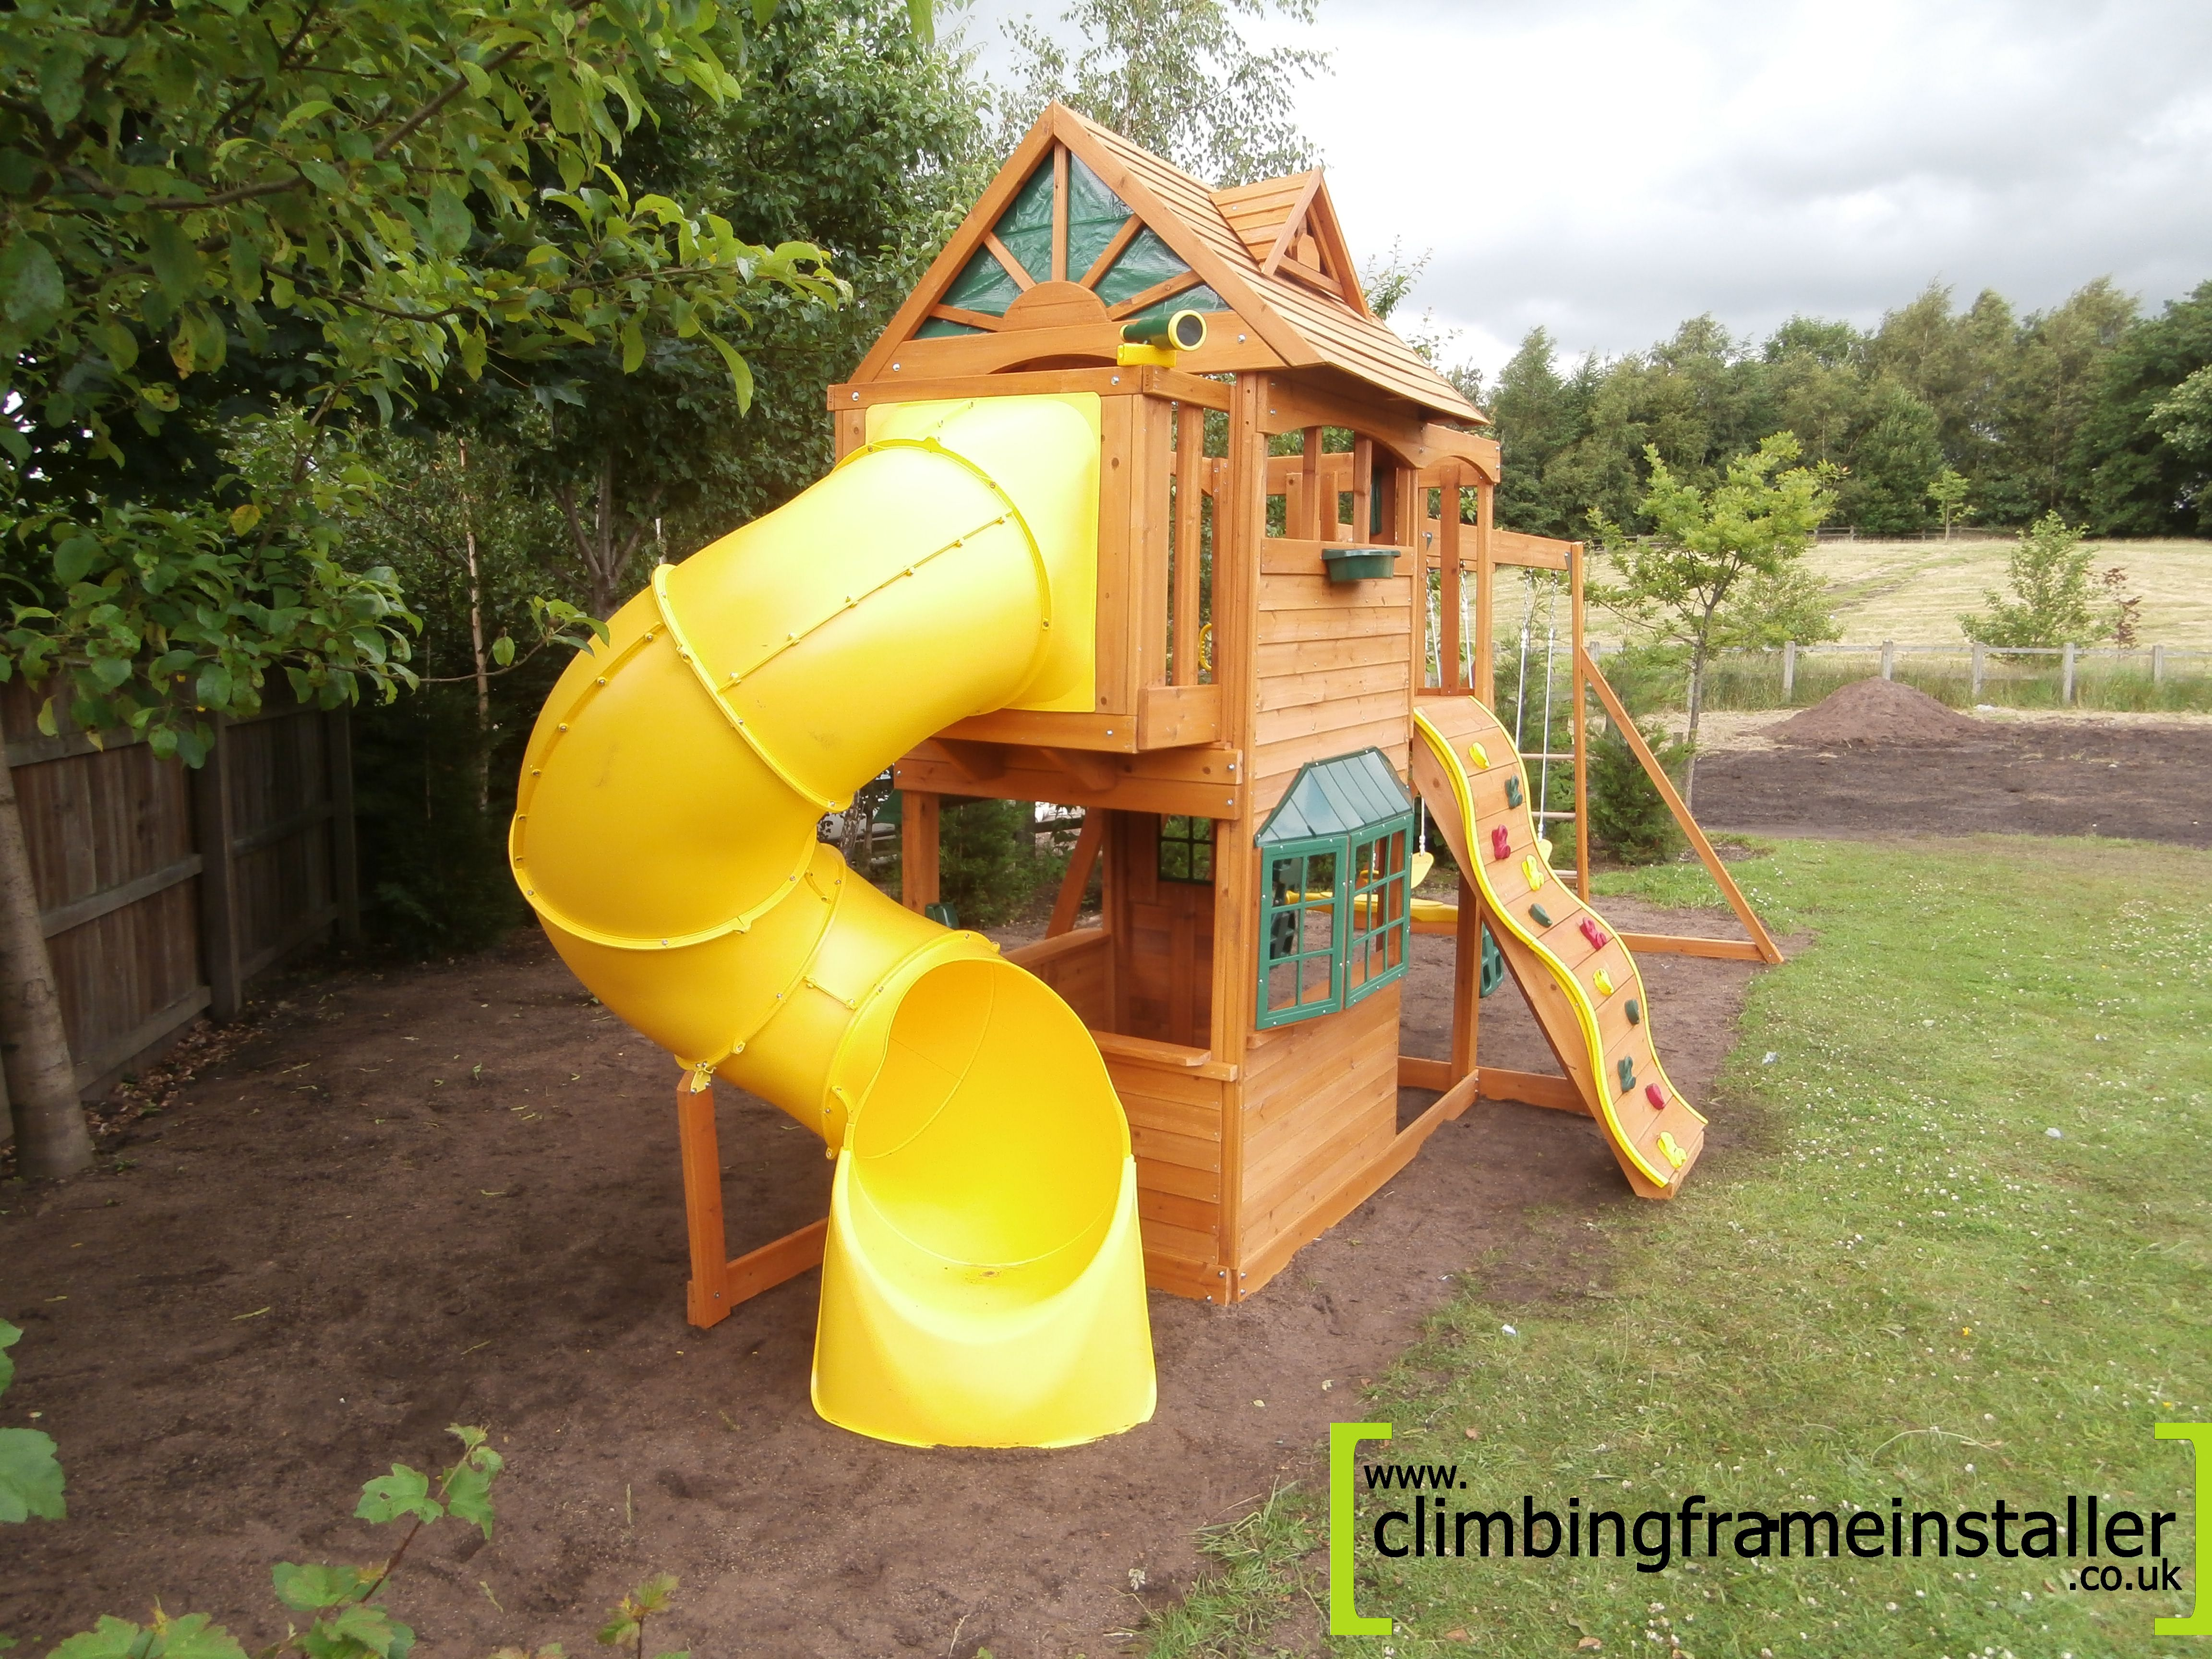 Childrens Wooden Climbing Frames Swings - All The Best Frames In 2018